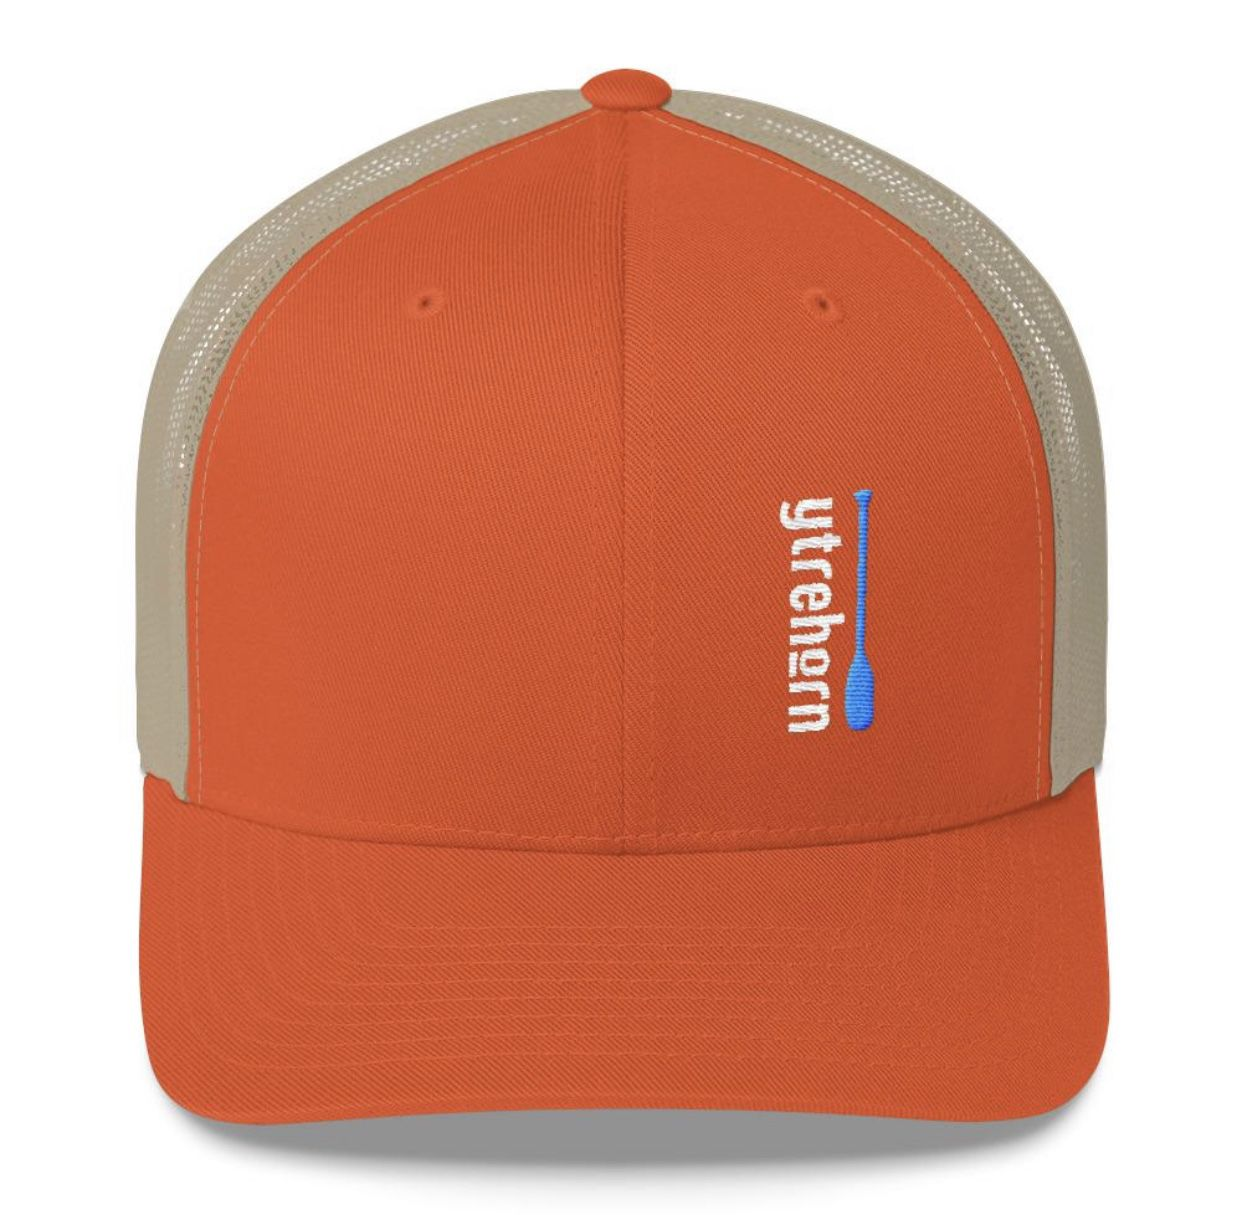 31a9b2abdceb8 Unisex SnapBack trucker hat in orange. Simple and stylish designs. A  Minnesota brand with Norwegian roots. More hat and color options available.